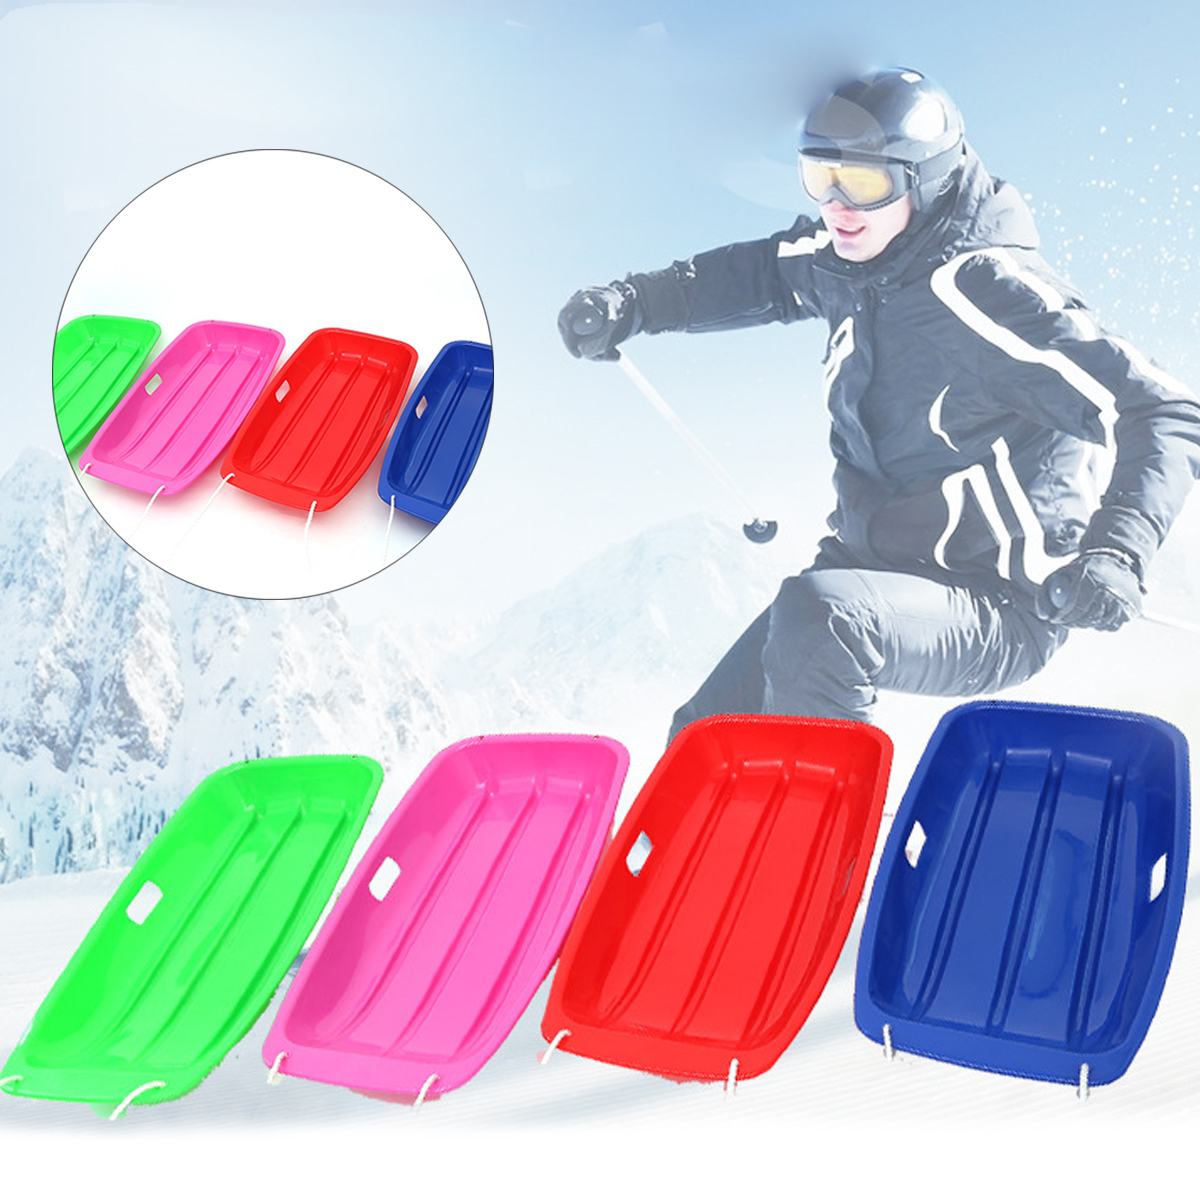 Vicetion Snow Sled Board for Kids and Adults Portable Plastic Skiing Boards Outdoor Winter Skiing Sled with Handle Snow Skiing Boards Stomp Pad Grass Sled